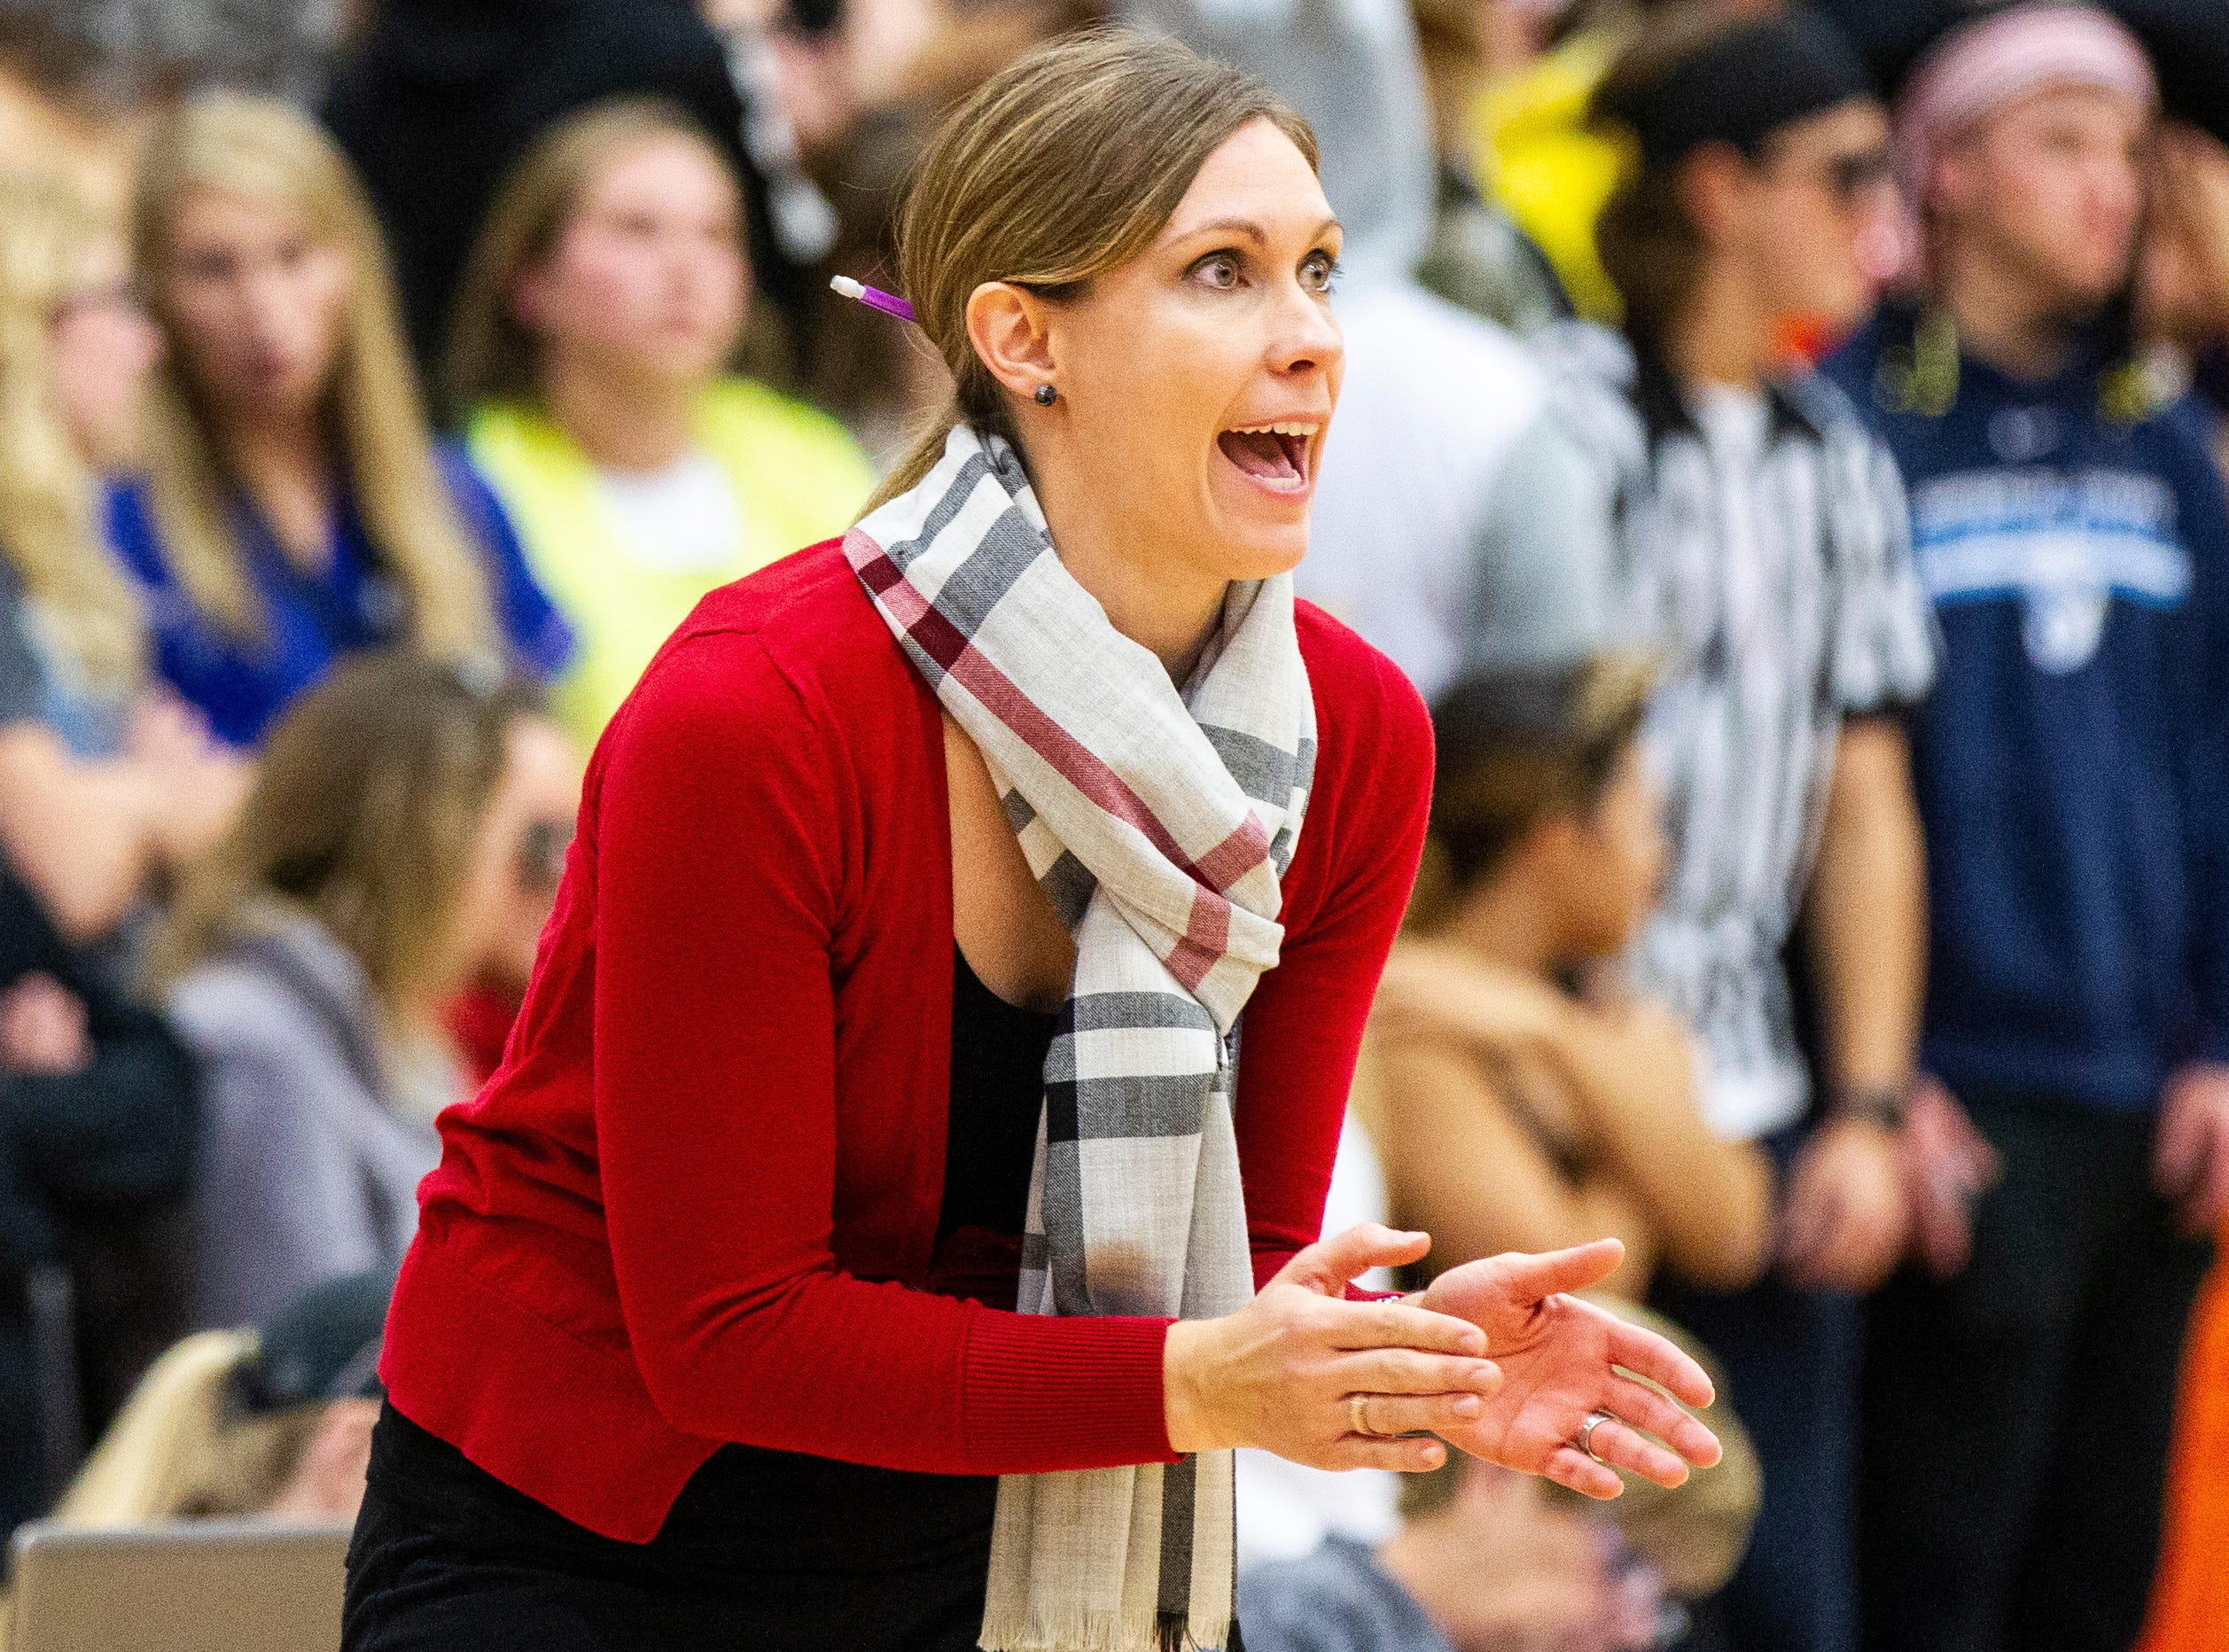 Iowa City High volleyball head coach Tricia Carty calls out to players during a Class 5A volleyball regional final game on Monday, Oct. 29, 2018, at Jefferson High School in Cedar Rapids.